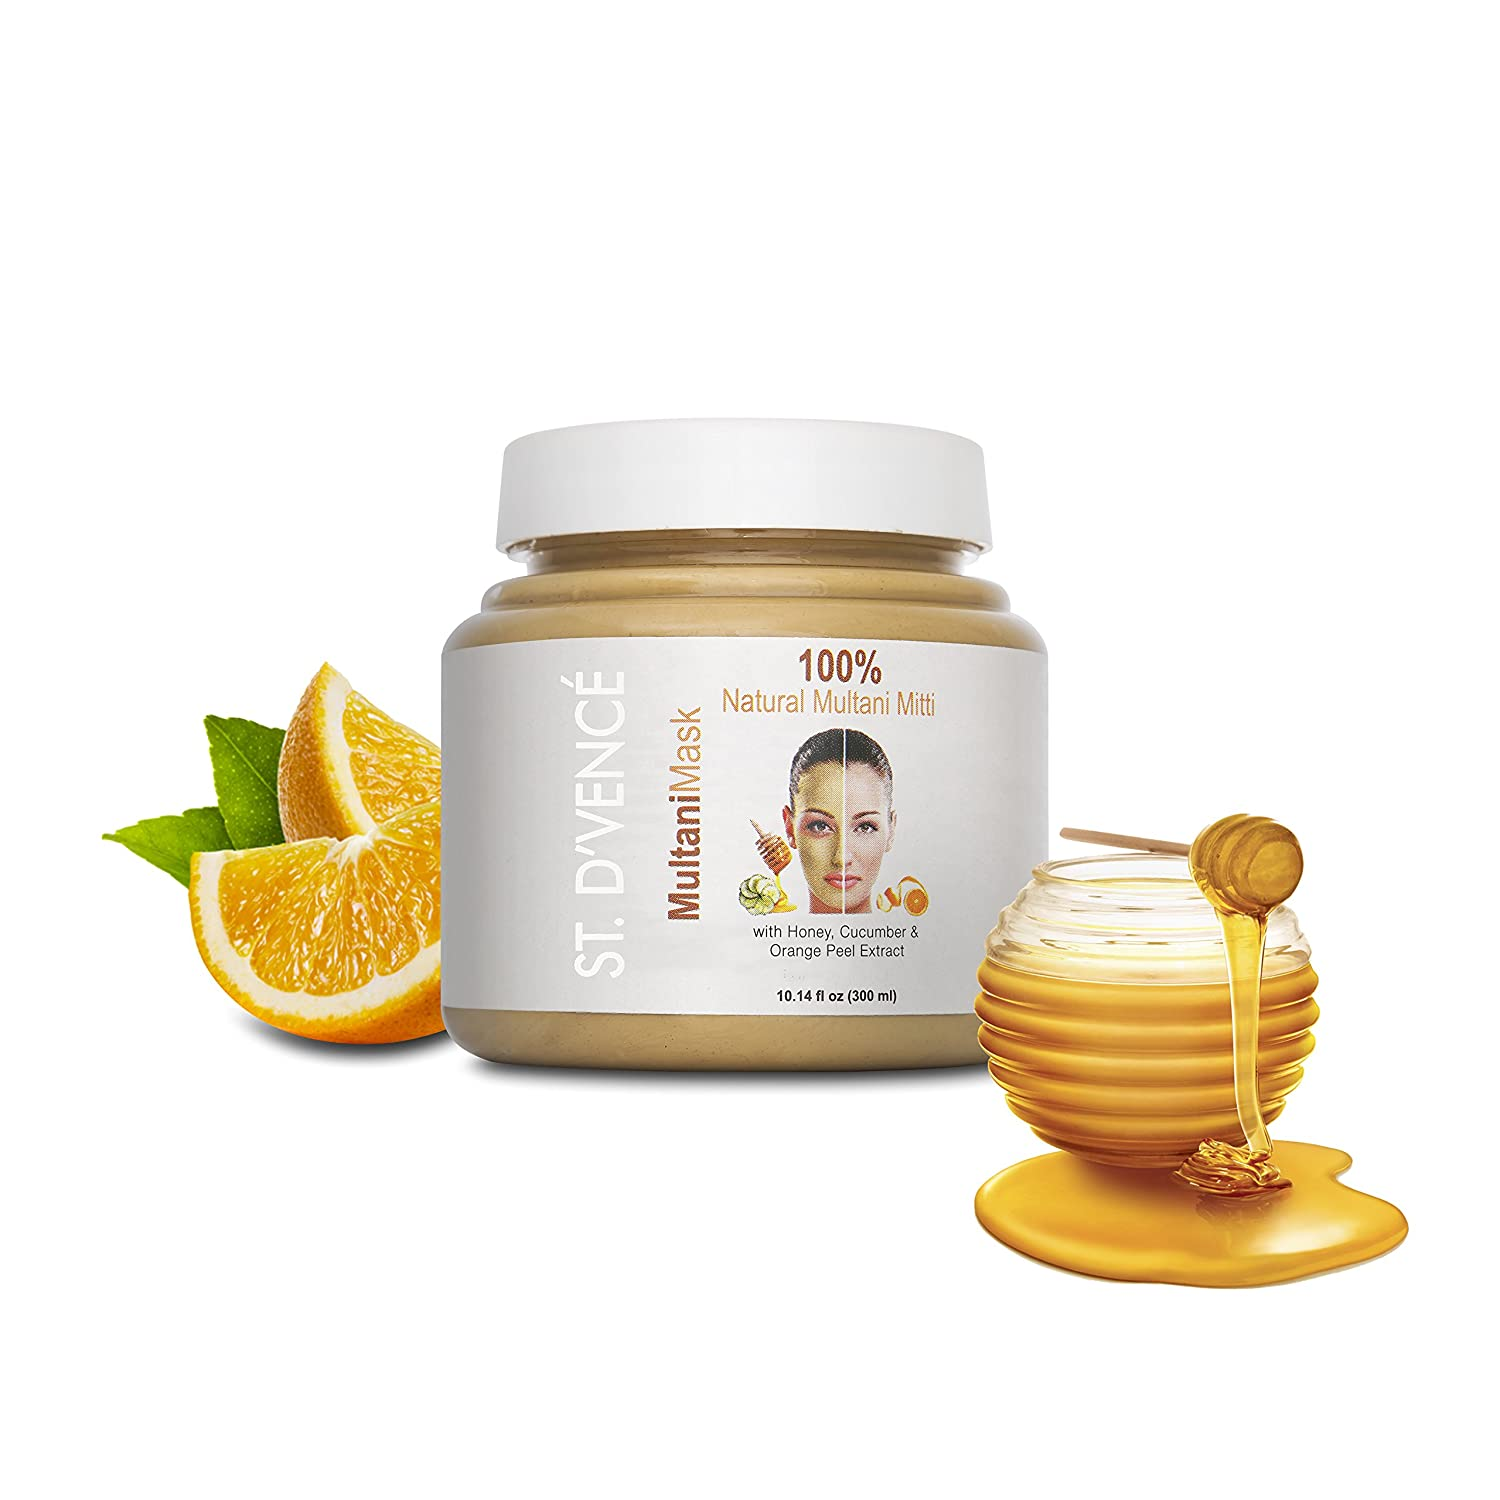 ST. D'VENCE Multani Mask Face Pack with Honey, Cucumber and Orange Peel Extracts, 300ml